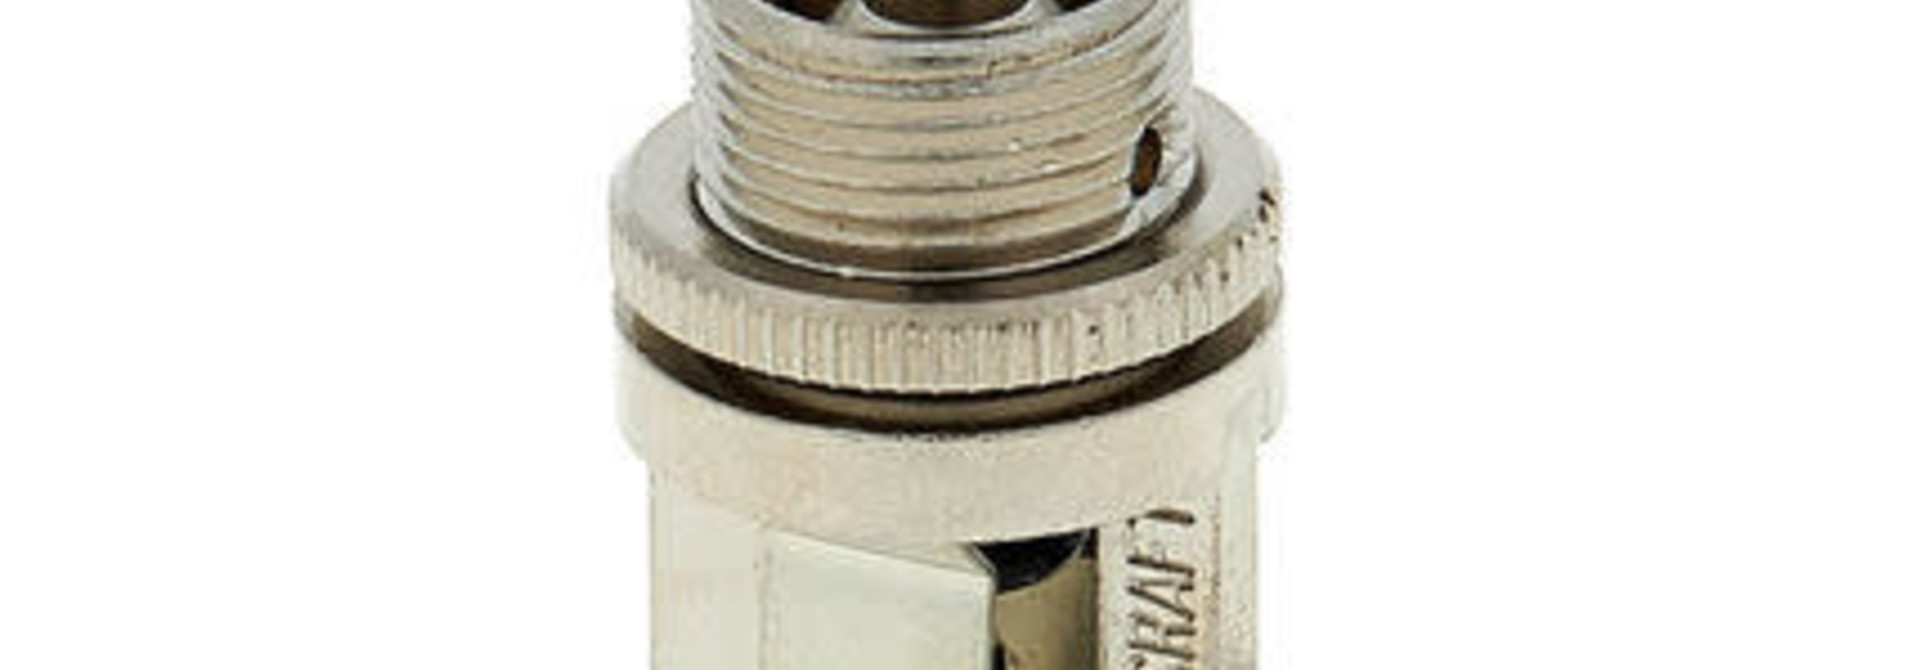 All Parts EP-4066-000 Switchcraft Short Toggle Switch